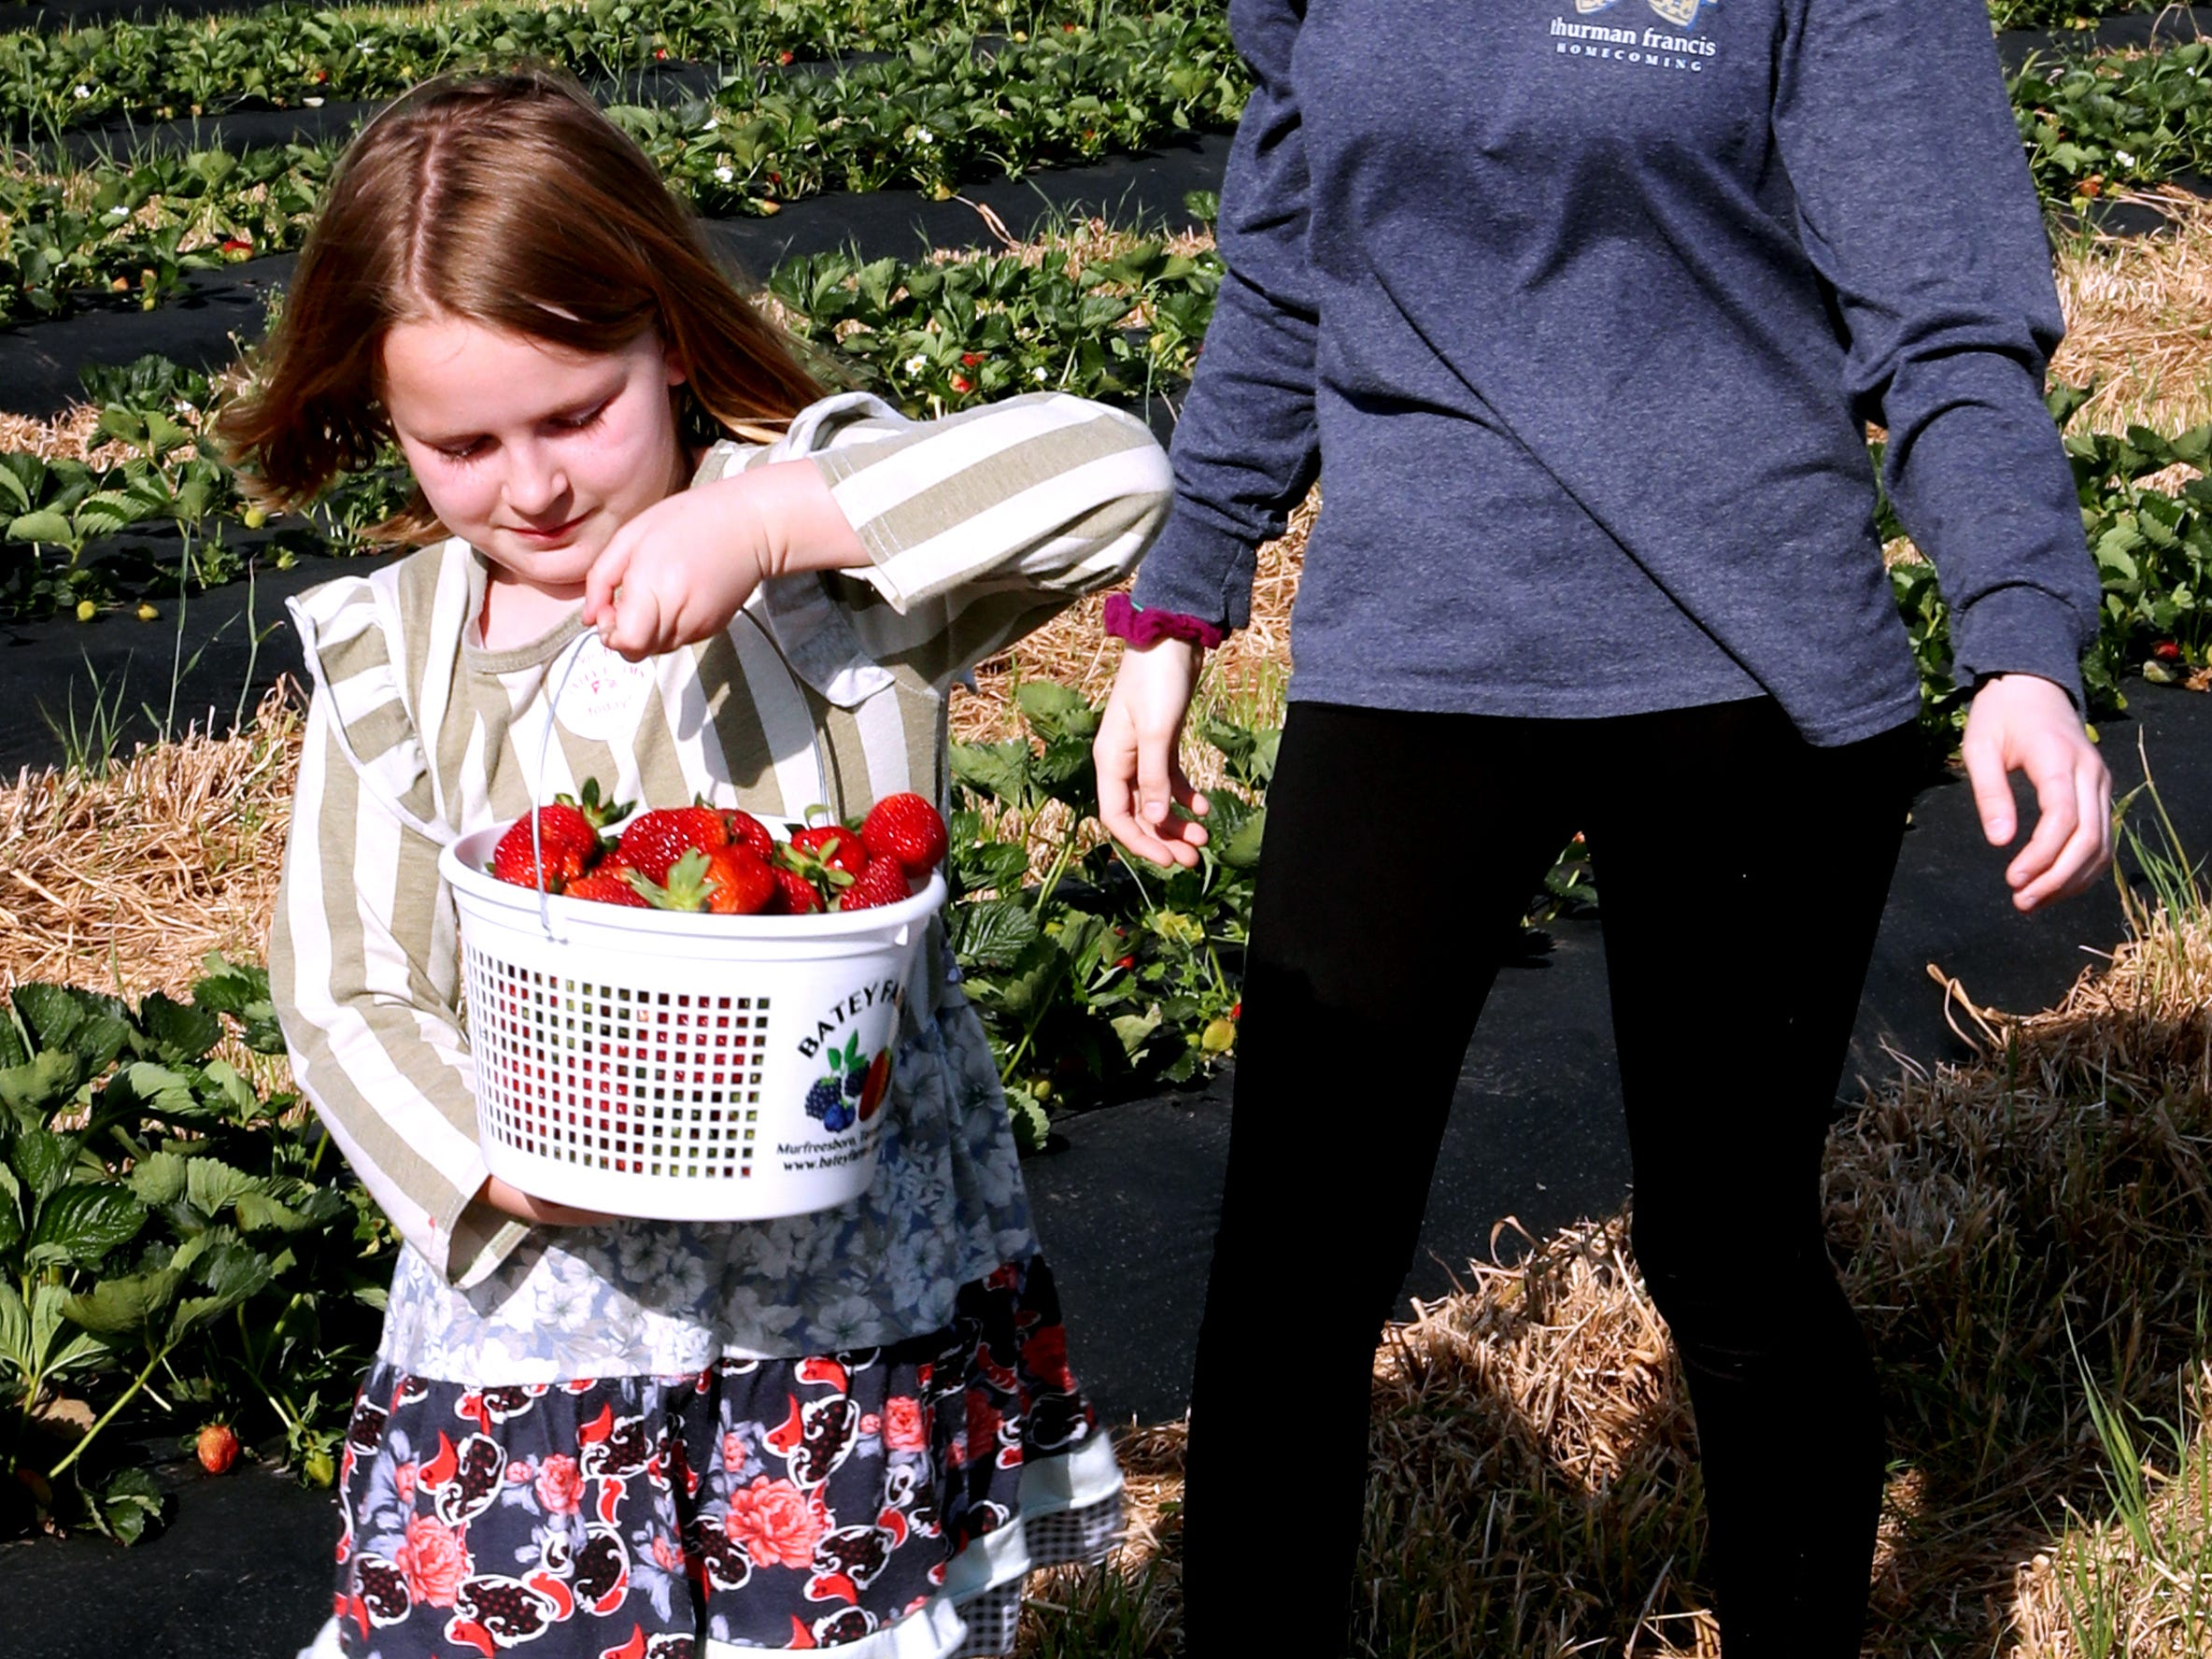 McKenna Davidson, 7, and her sister Morgan Davidson, 15 walk back up the row of strawberries after filling their basket  on Wednesday April 24, 2019, at Batey Farms in Murfreesboro.